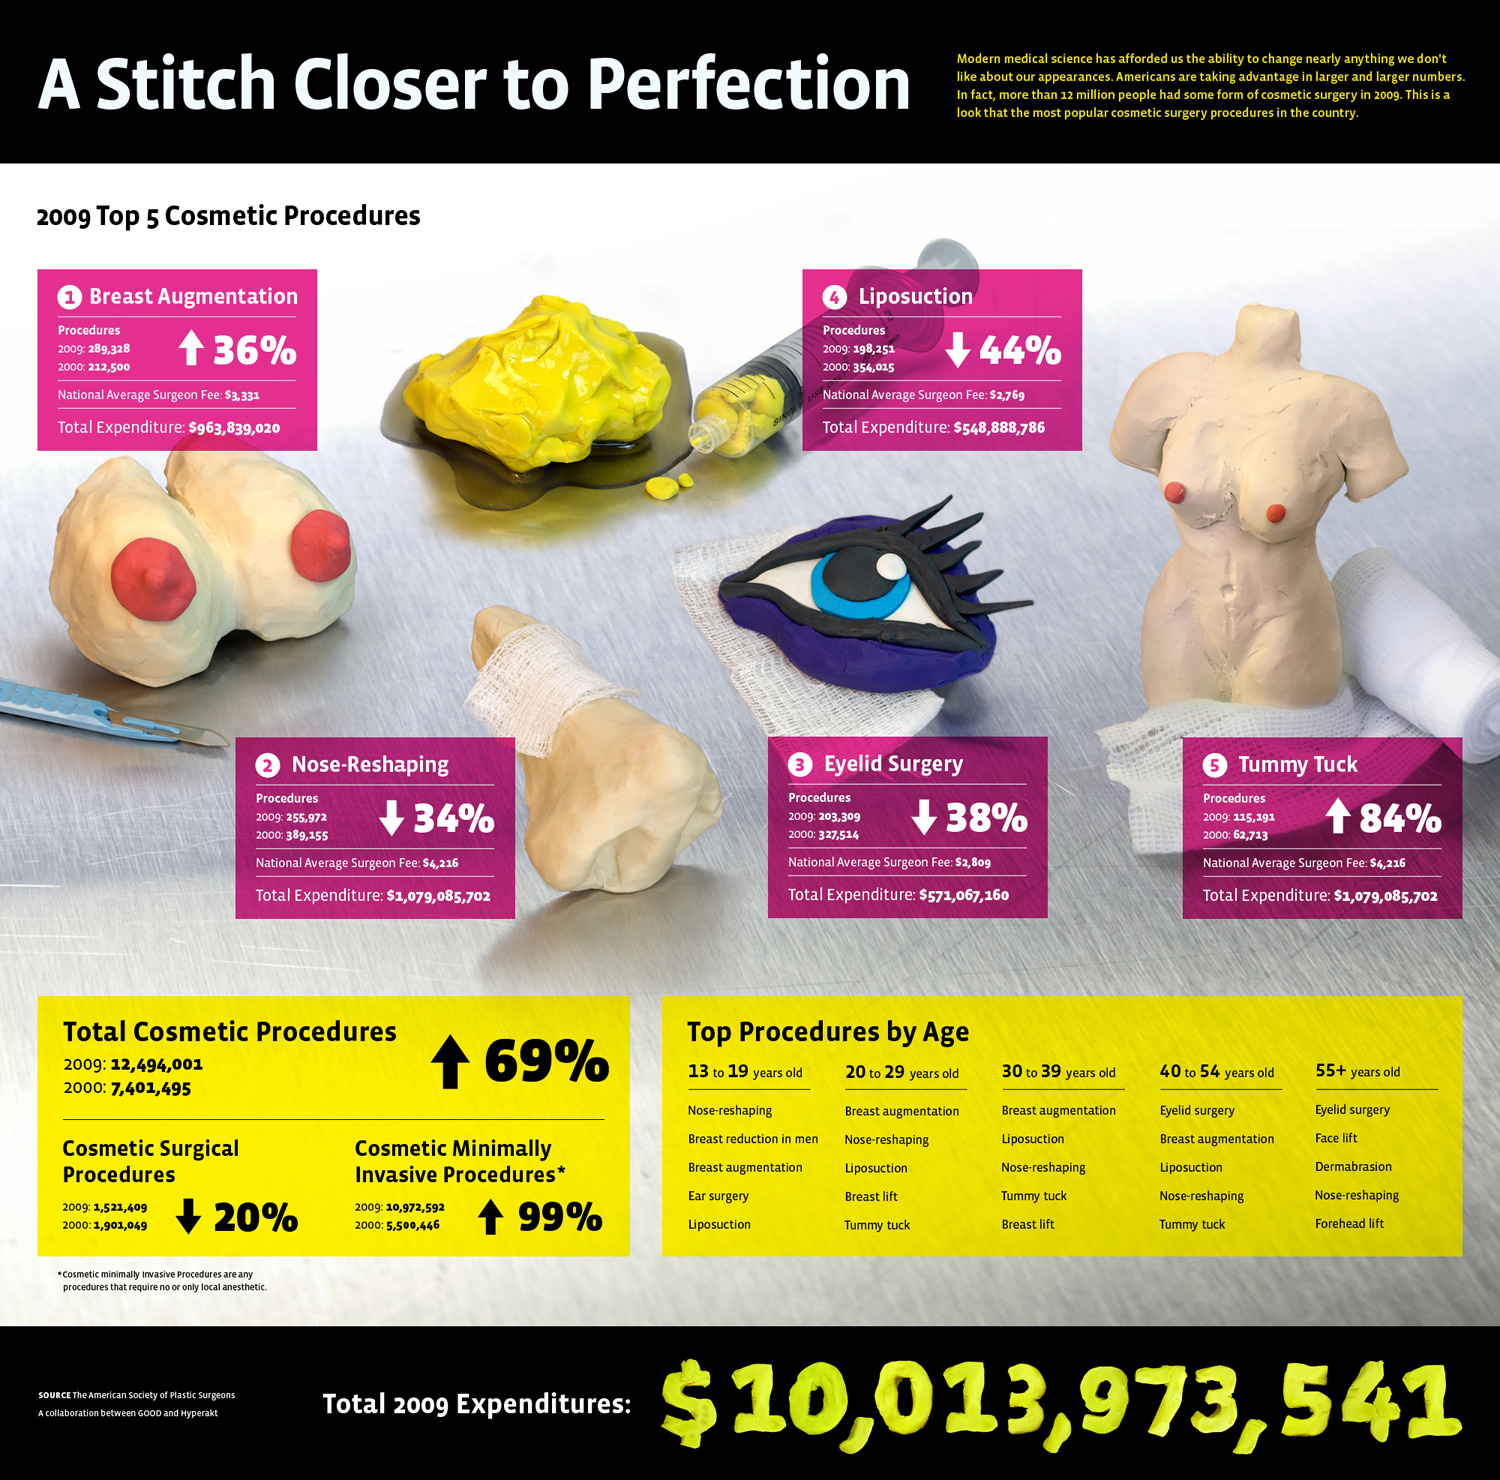 Transparency: What Plastic Surgery Are We Getting? - GOOD